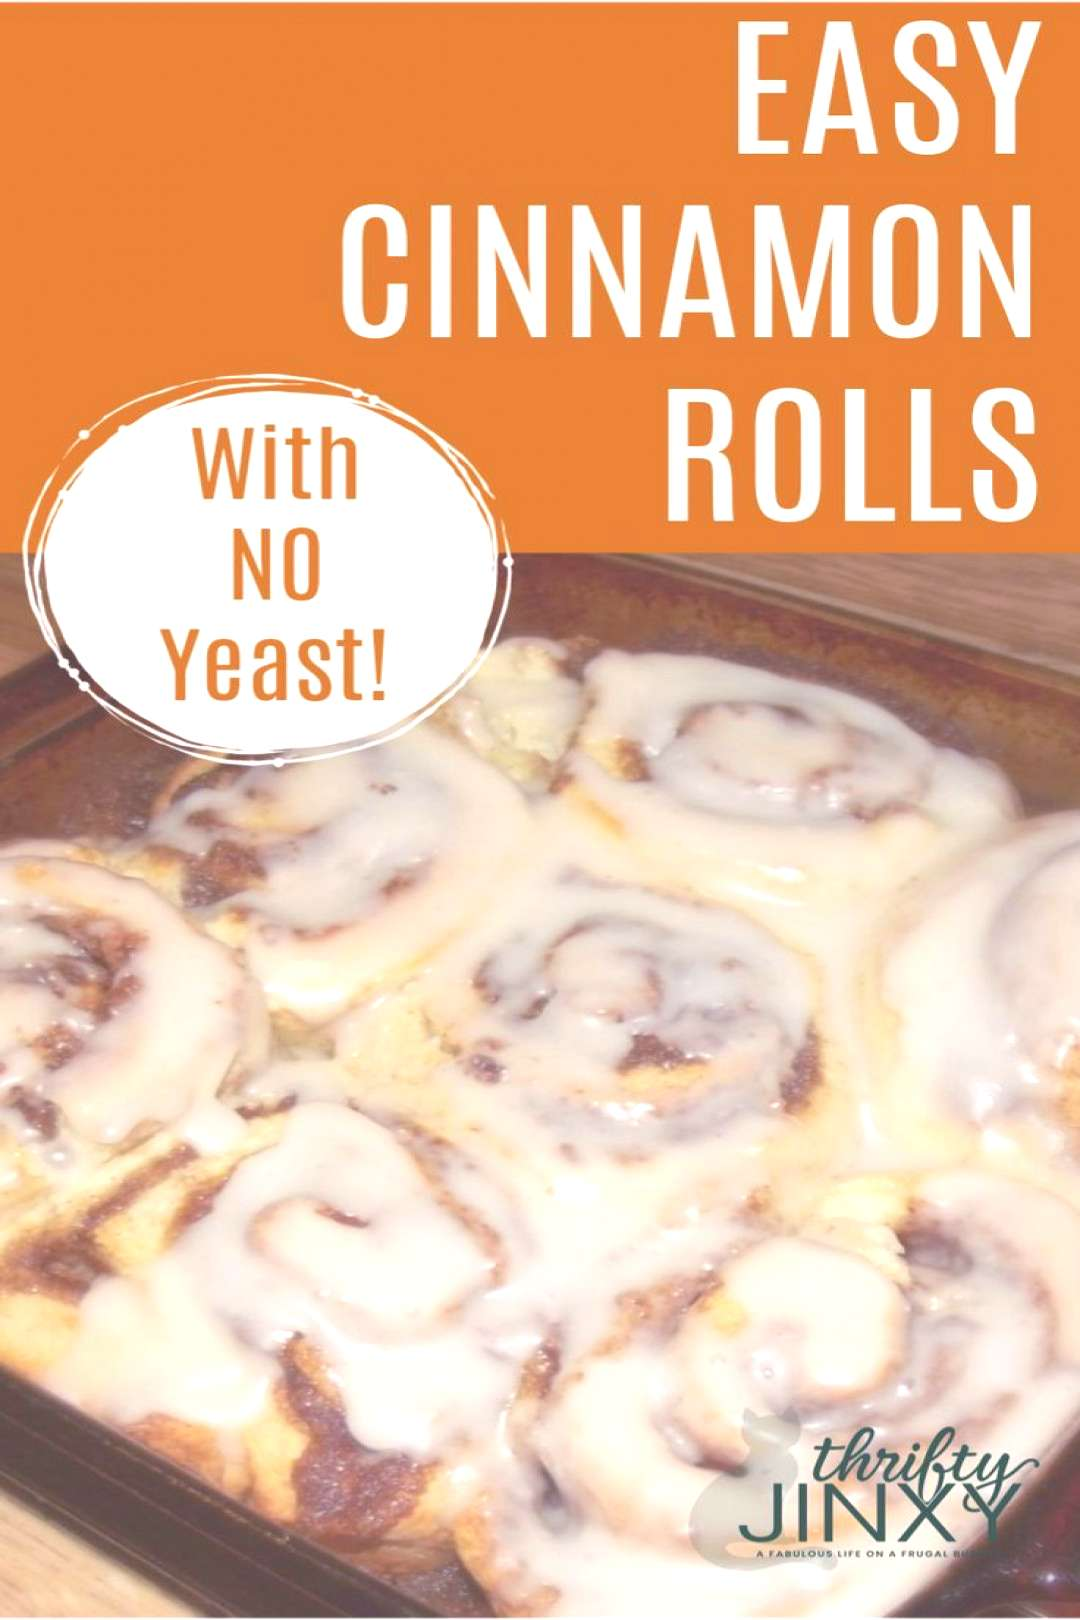 There's no need to wait for the dough to rise with this Quick and Easy No Yeast Cinnamon Rolls reci